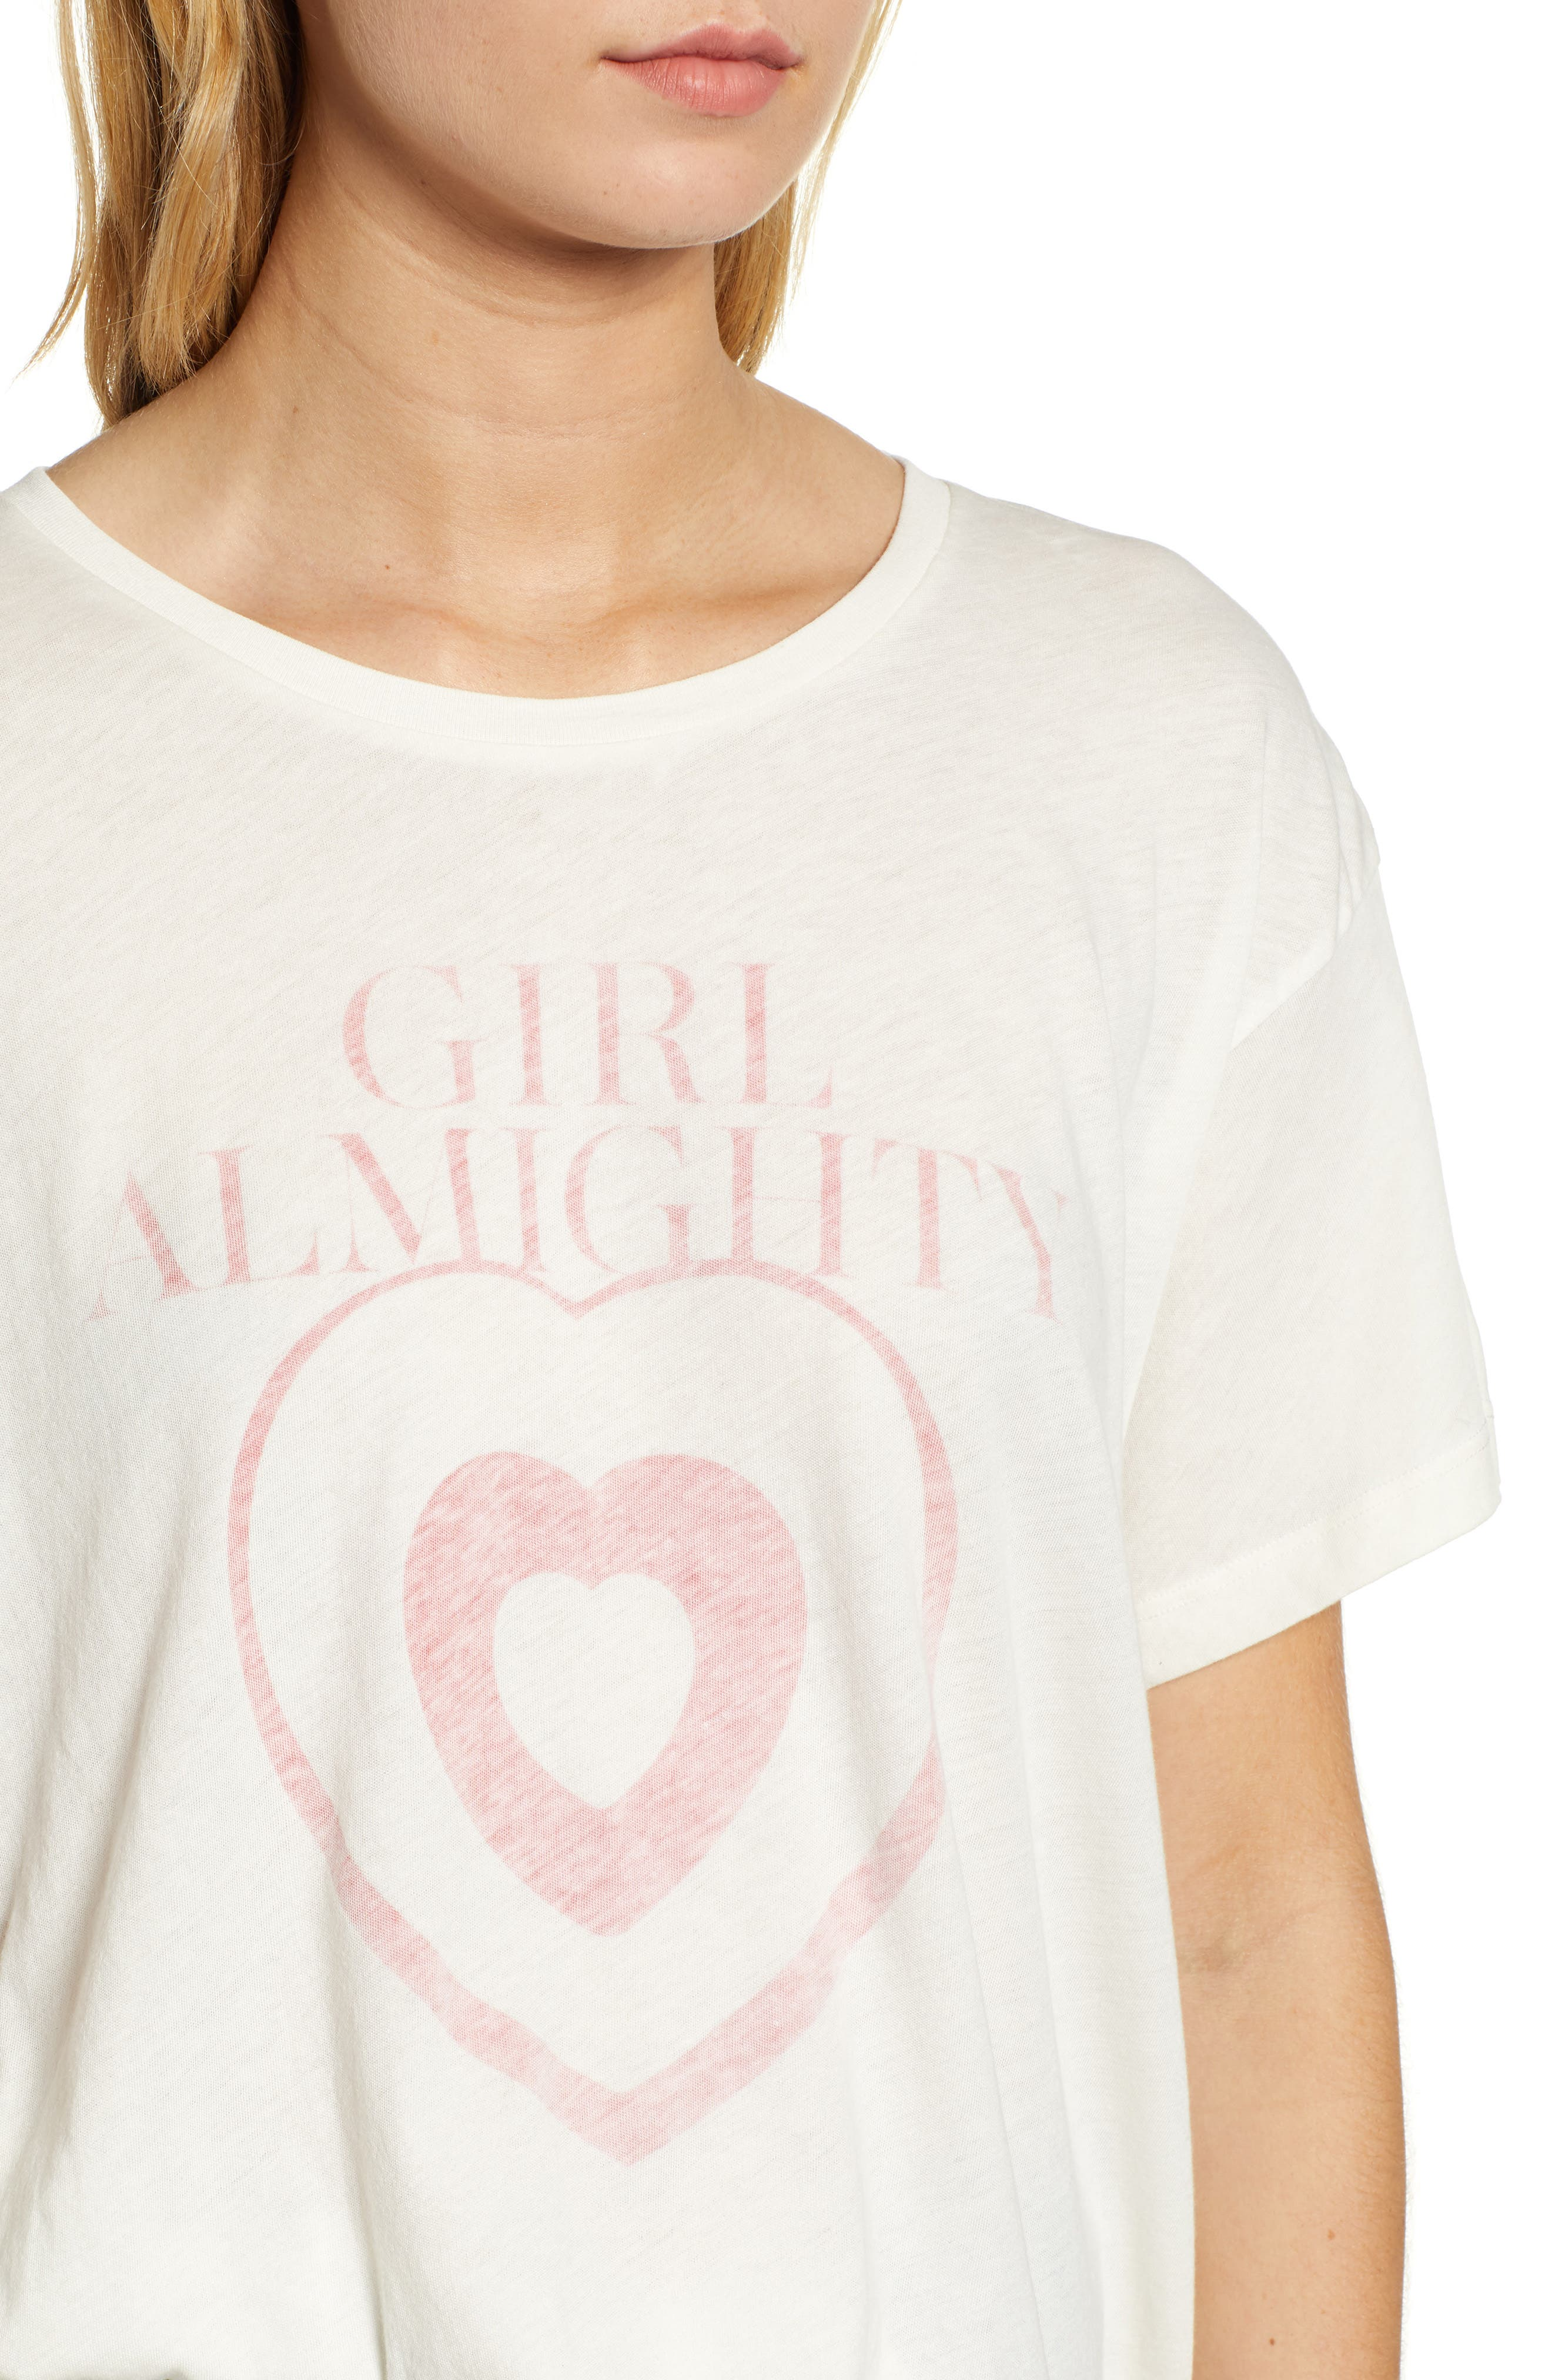 Girl Almighty Manchester Tee,                             Alternate thumbnail 4, color,                             101